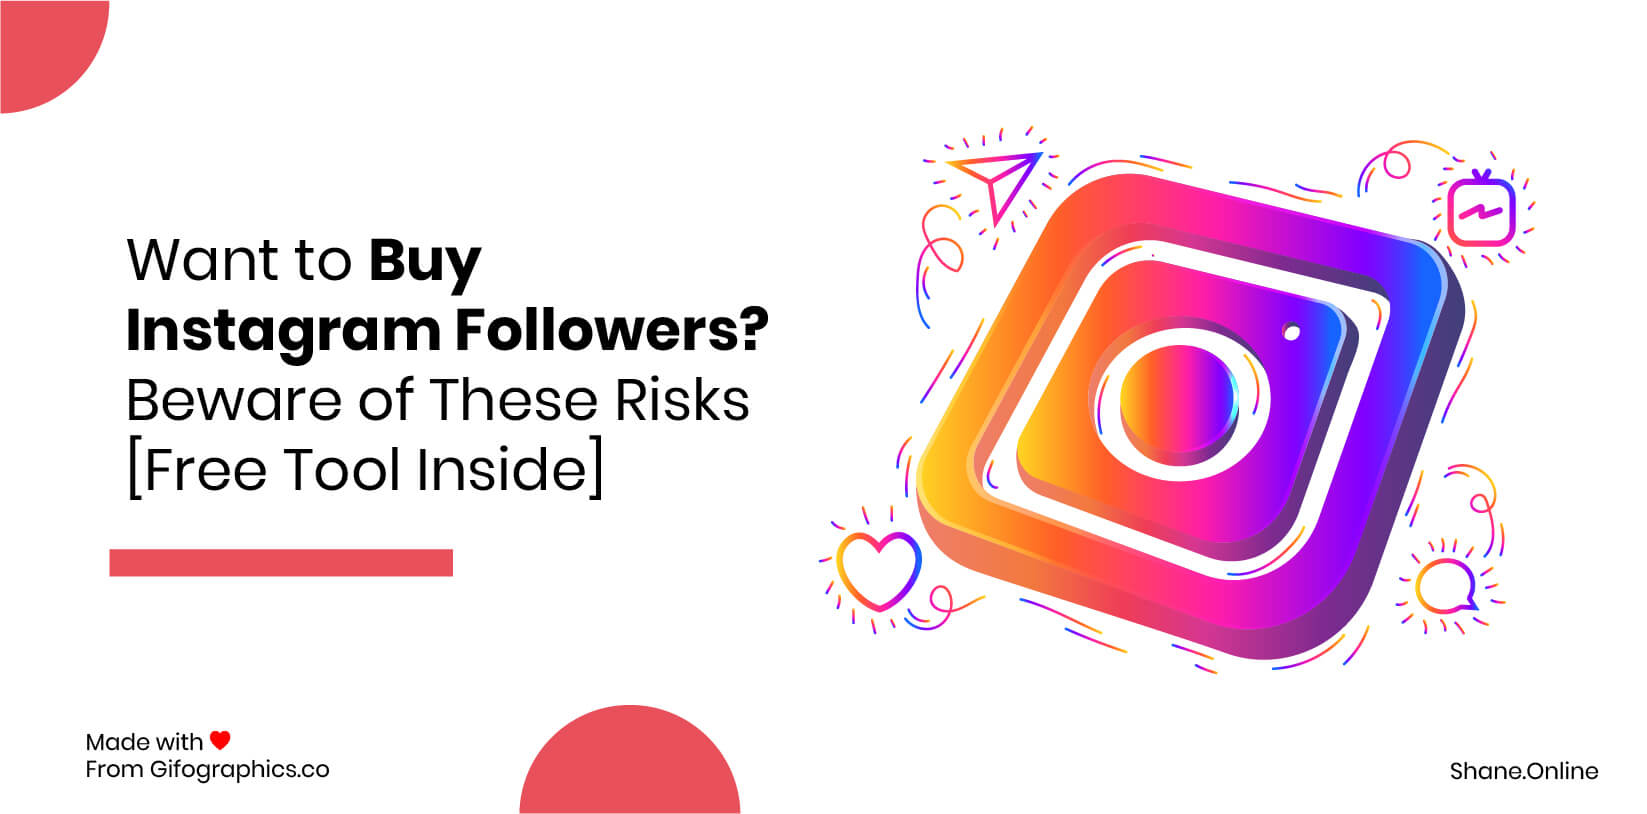 Want to Buy Instagram Followers? Beware of These Risks - Shane Barker